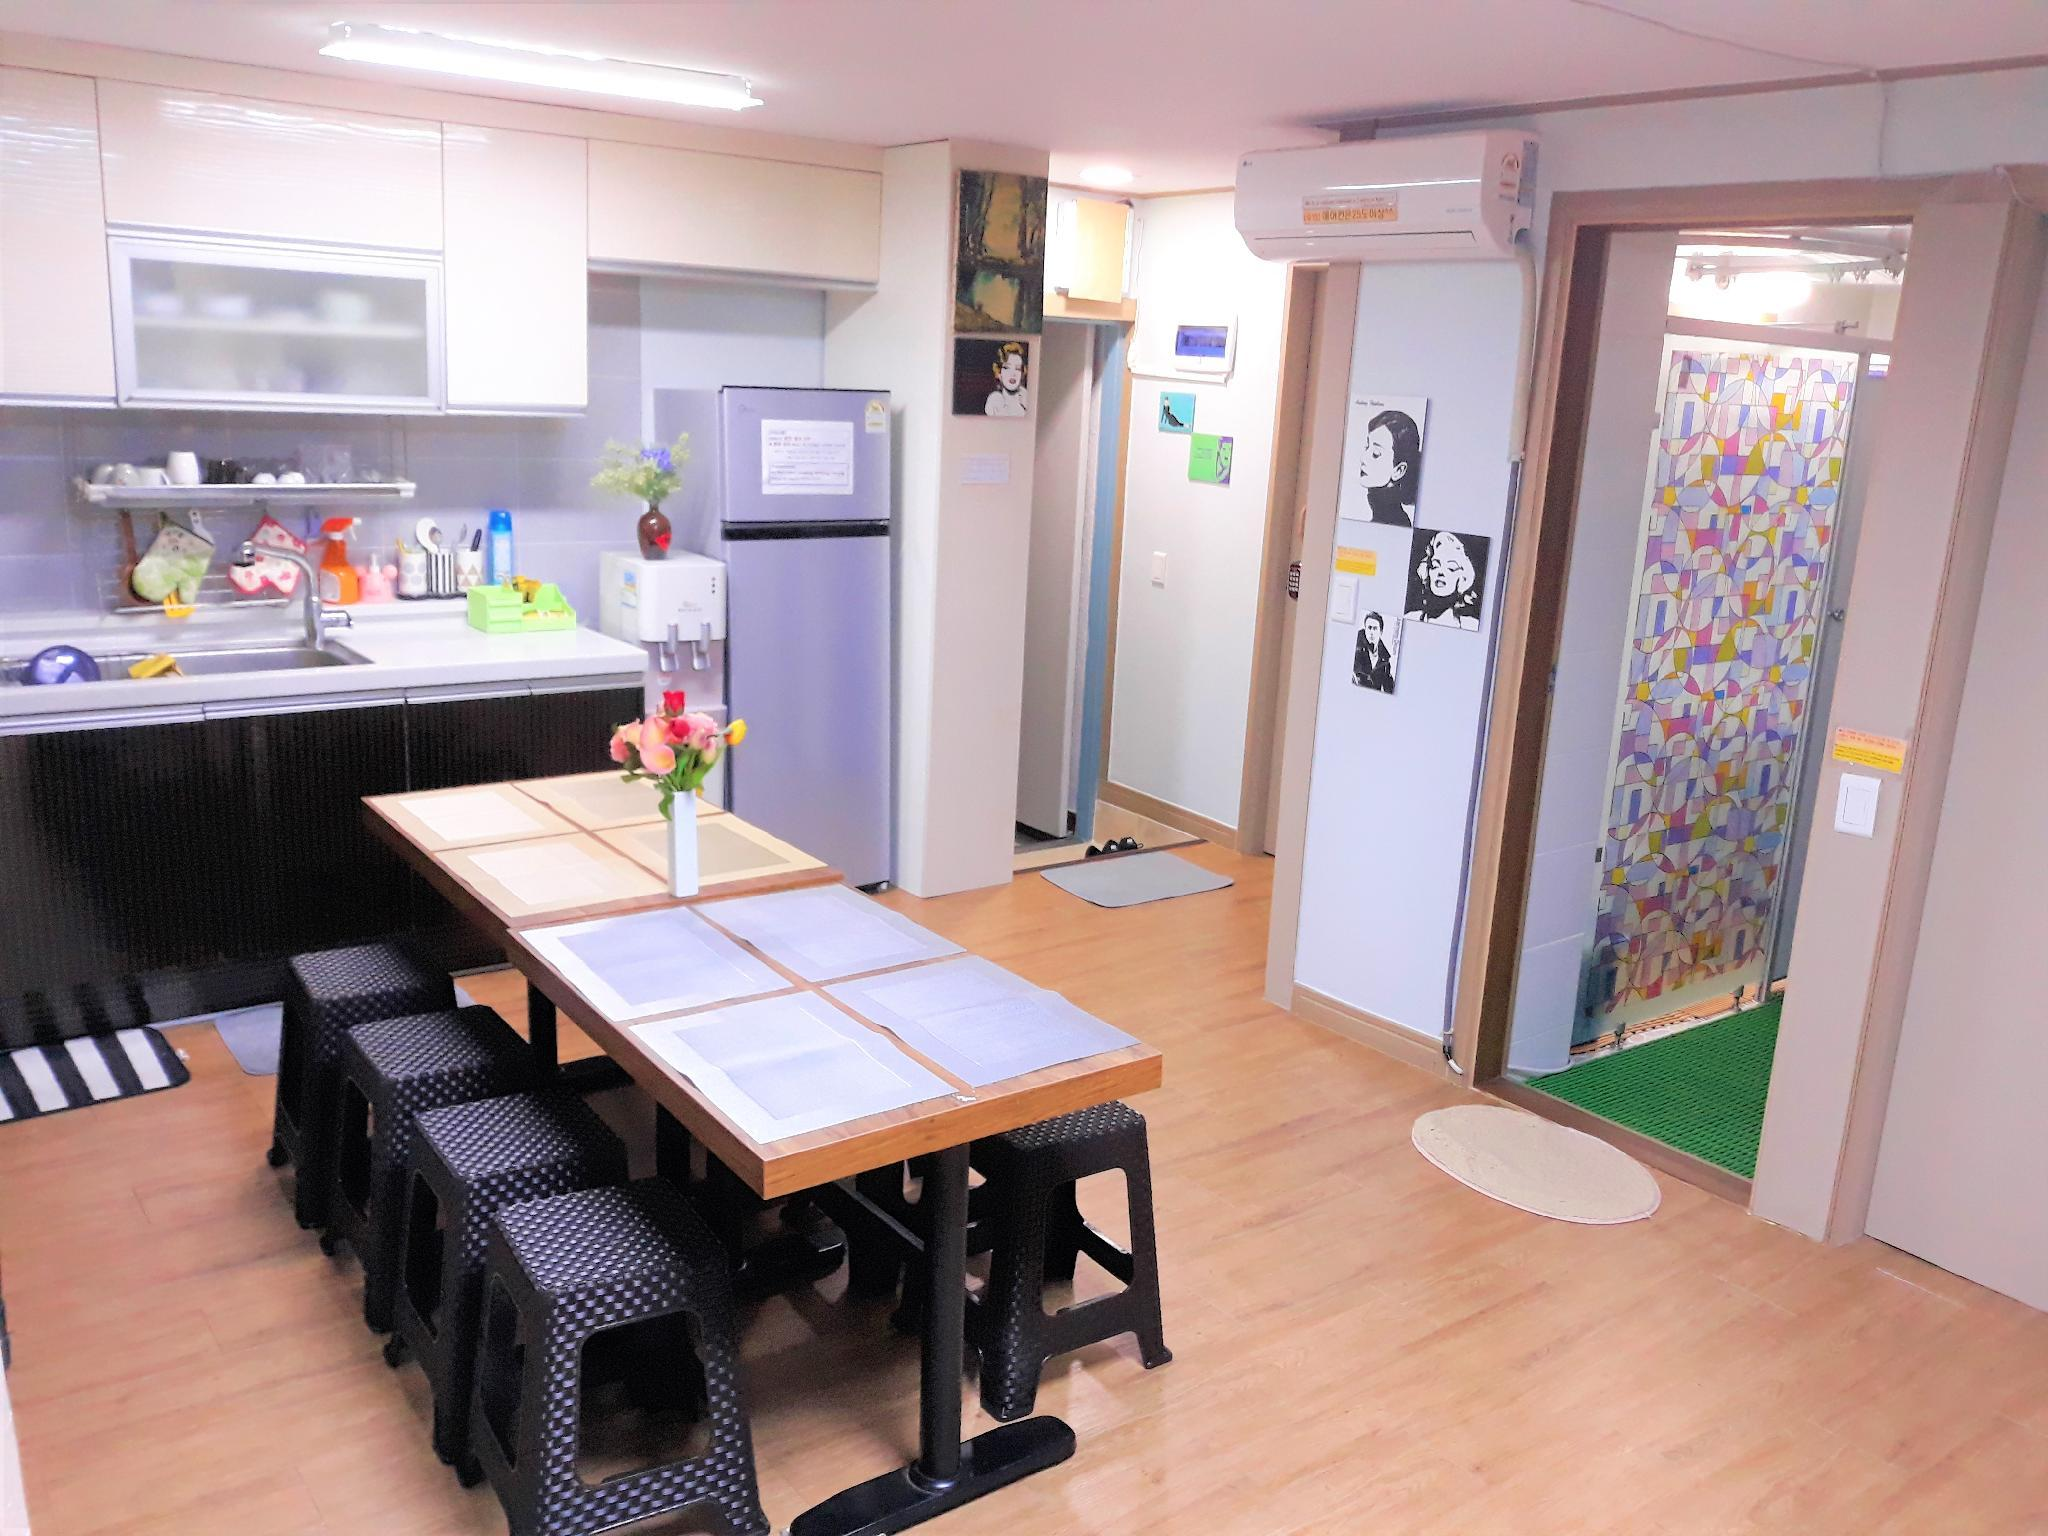 BUSAN ST. WLB GUEST HOUSE Private Space 6 9 Guests